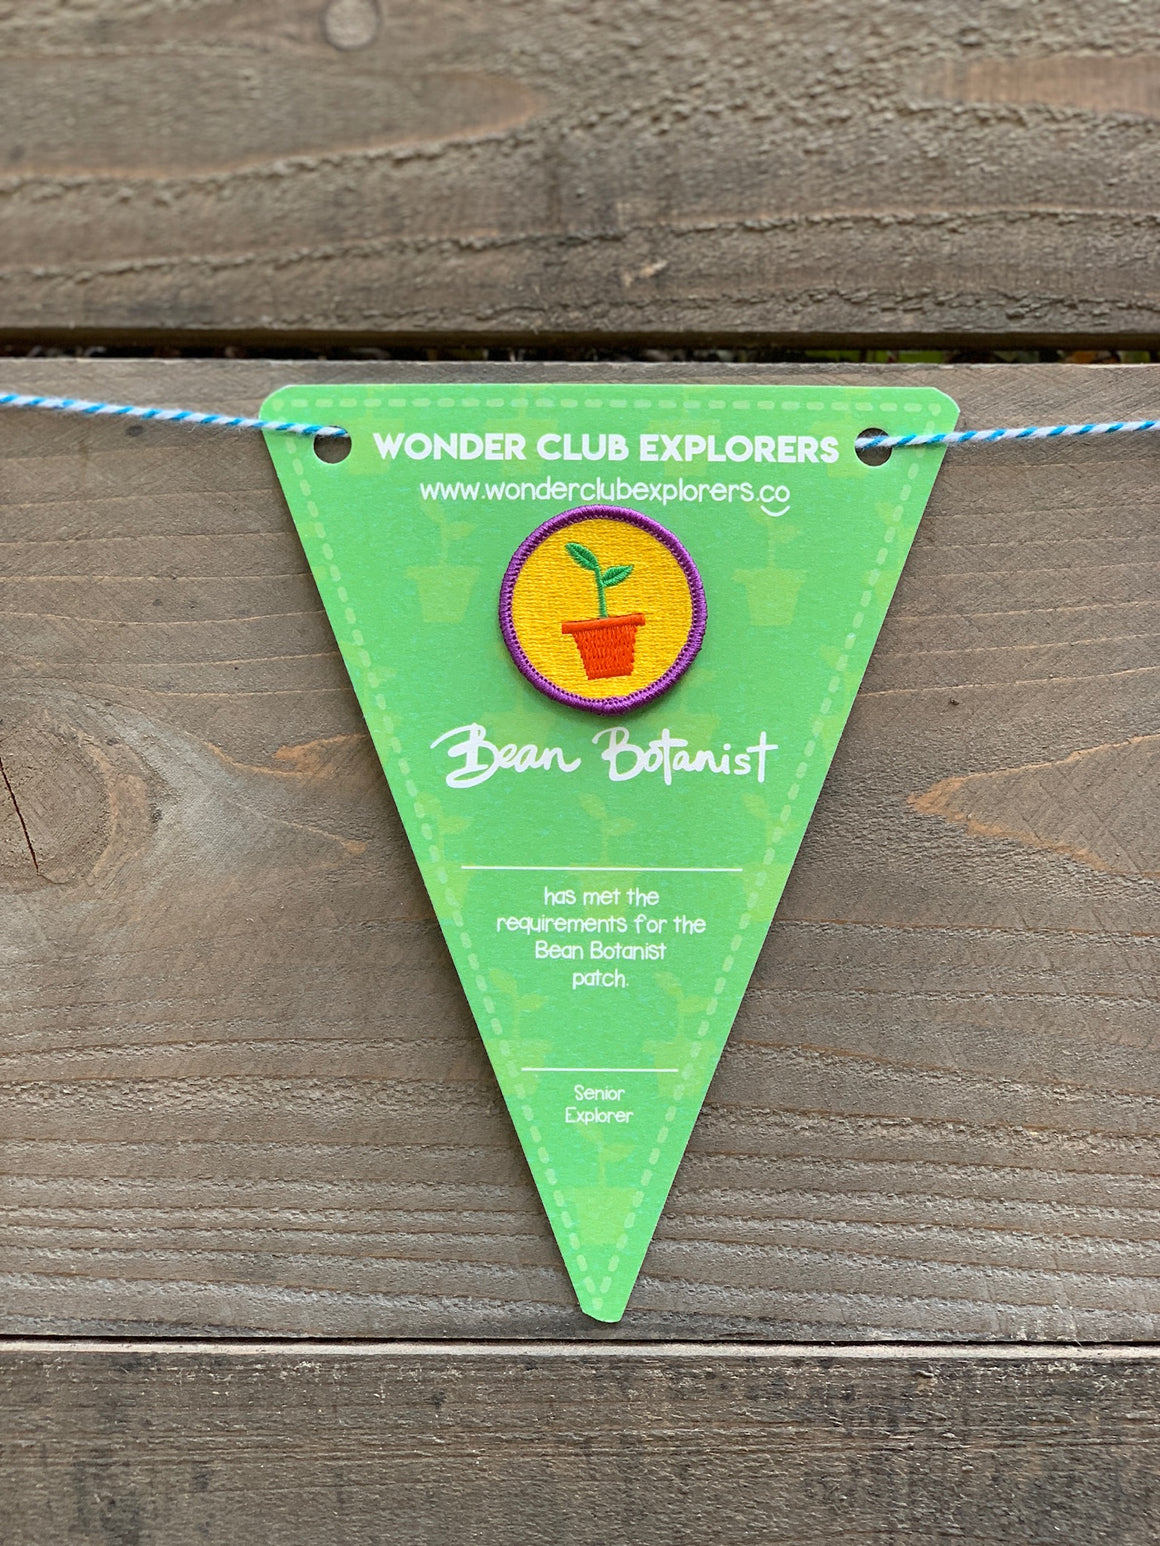 Wonder Club Explorer Bean Botanist Patch